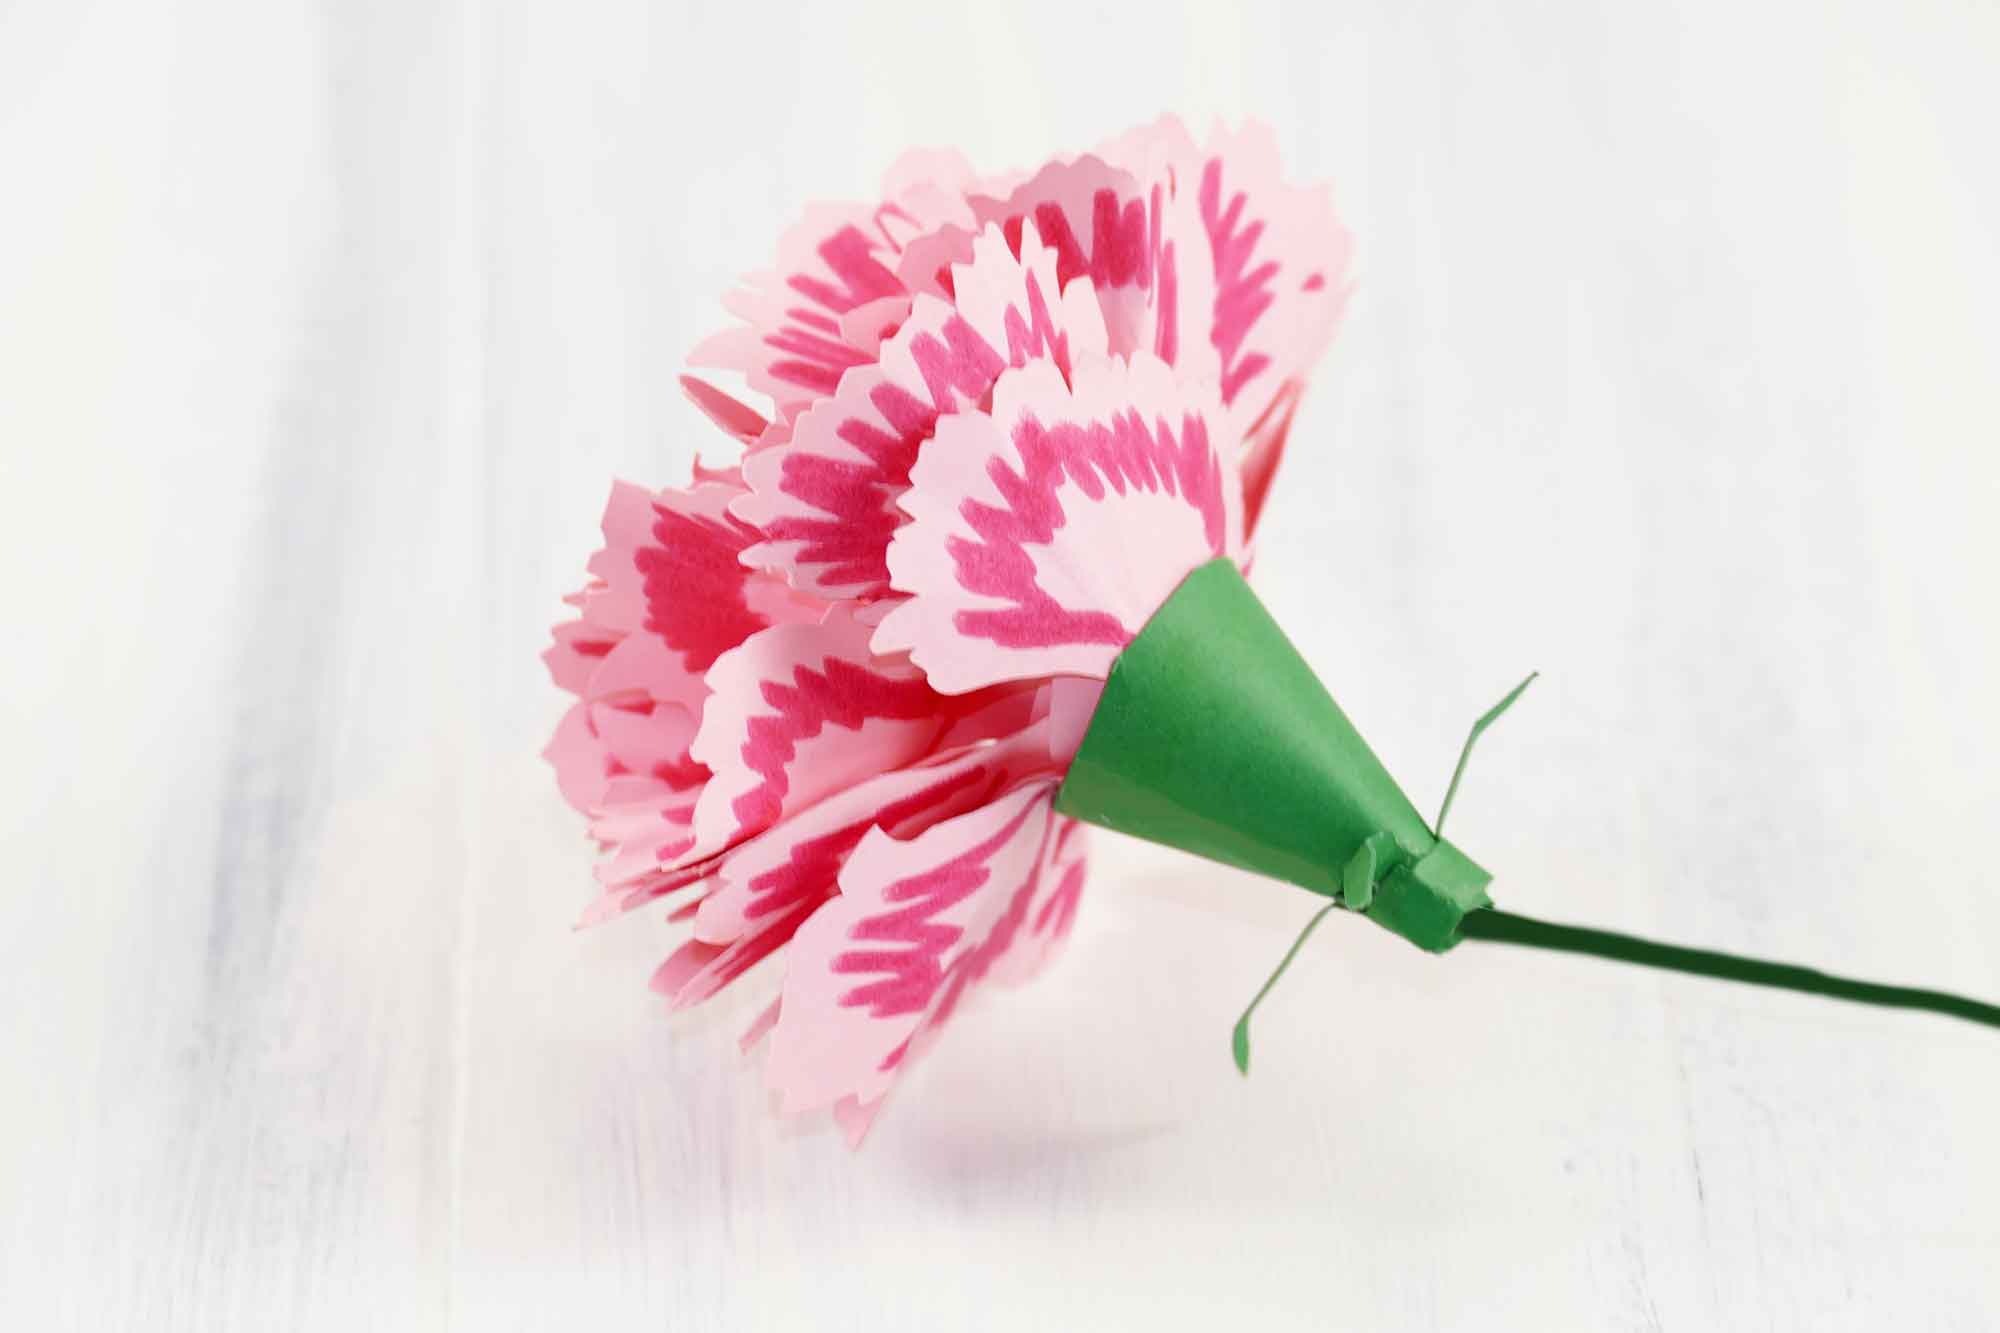 paper carnations You can make paper carnation flowers out of various materials, with crepe paper, tissue paper, and printer paper being the most popular choices once you're comfortable with the paper crafting process, try other materials, such as fabric or felt, for an even more unique project.